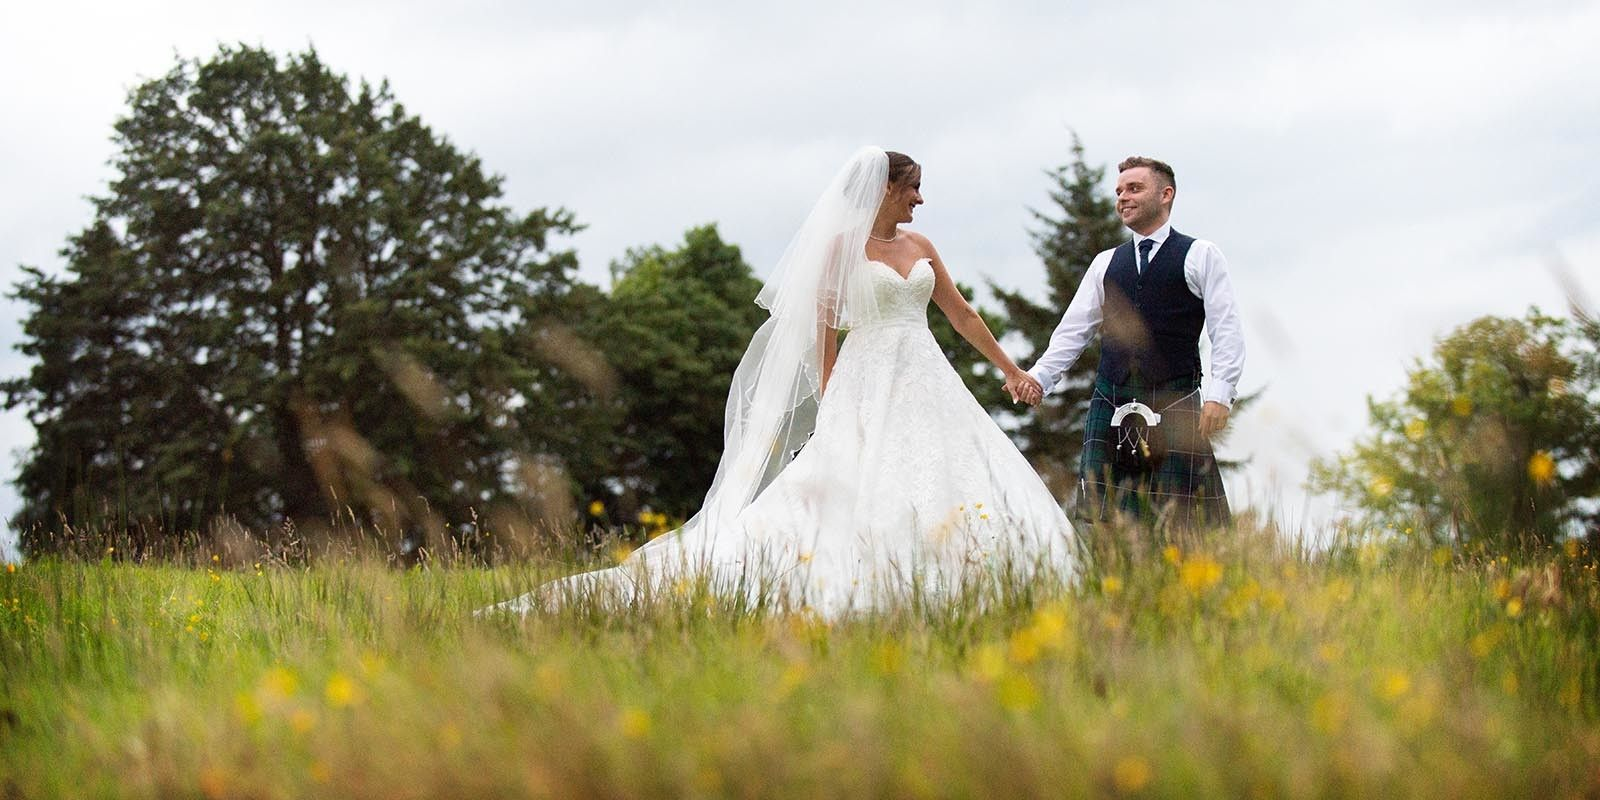 Beautiful and natural moments from weddings captured by Ian Arthur Wedding Photography